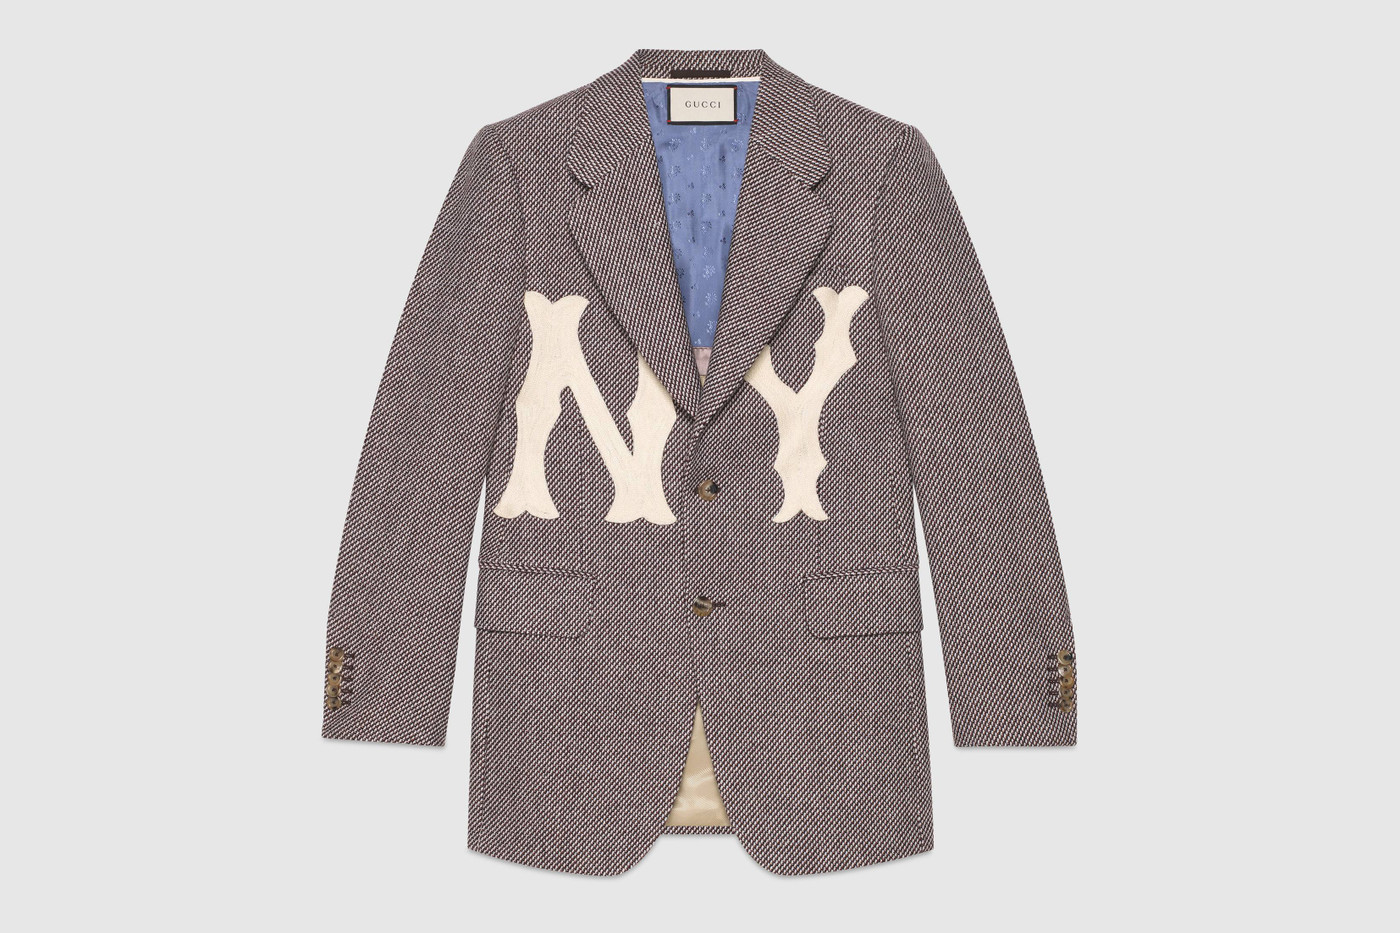 d62f129cd36 Gucci Extends On Its Love For the NY Yankees With a New Capsule ...